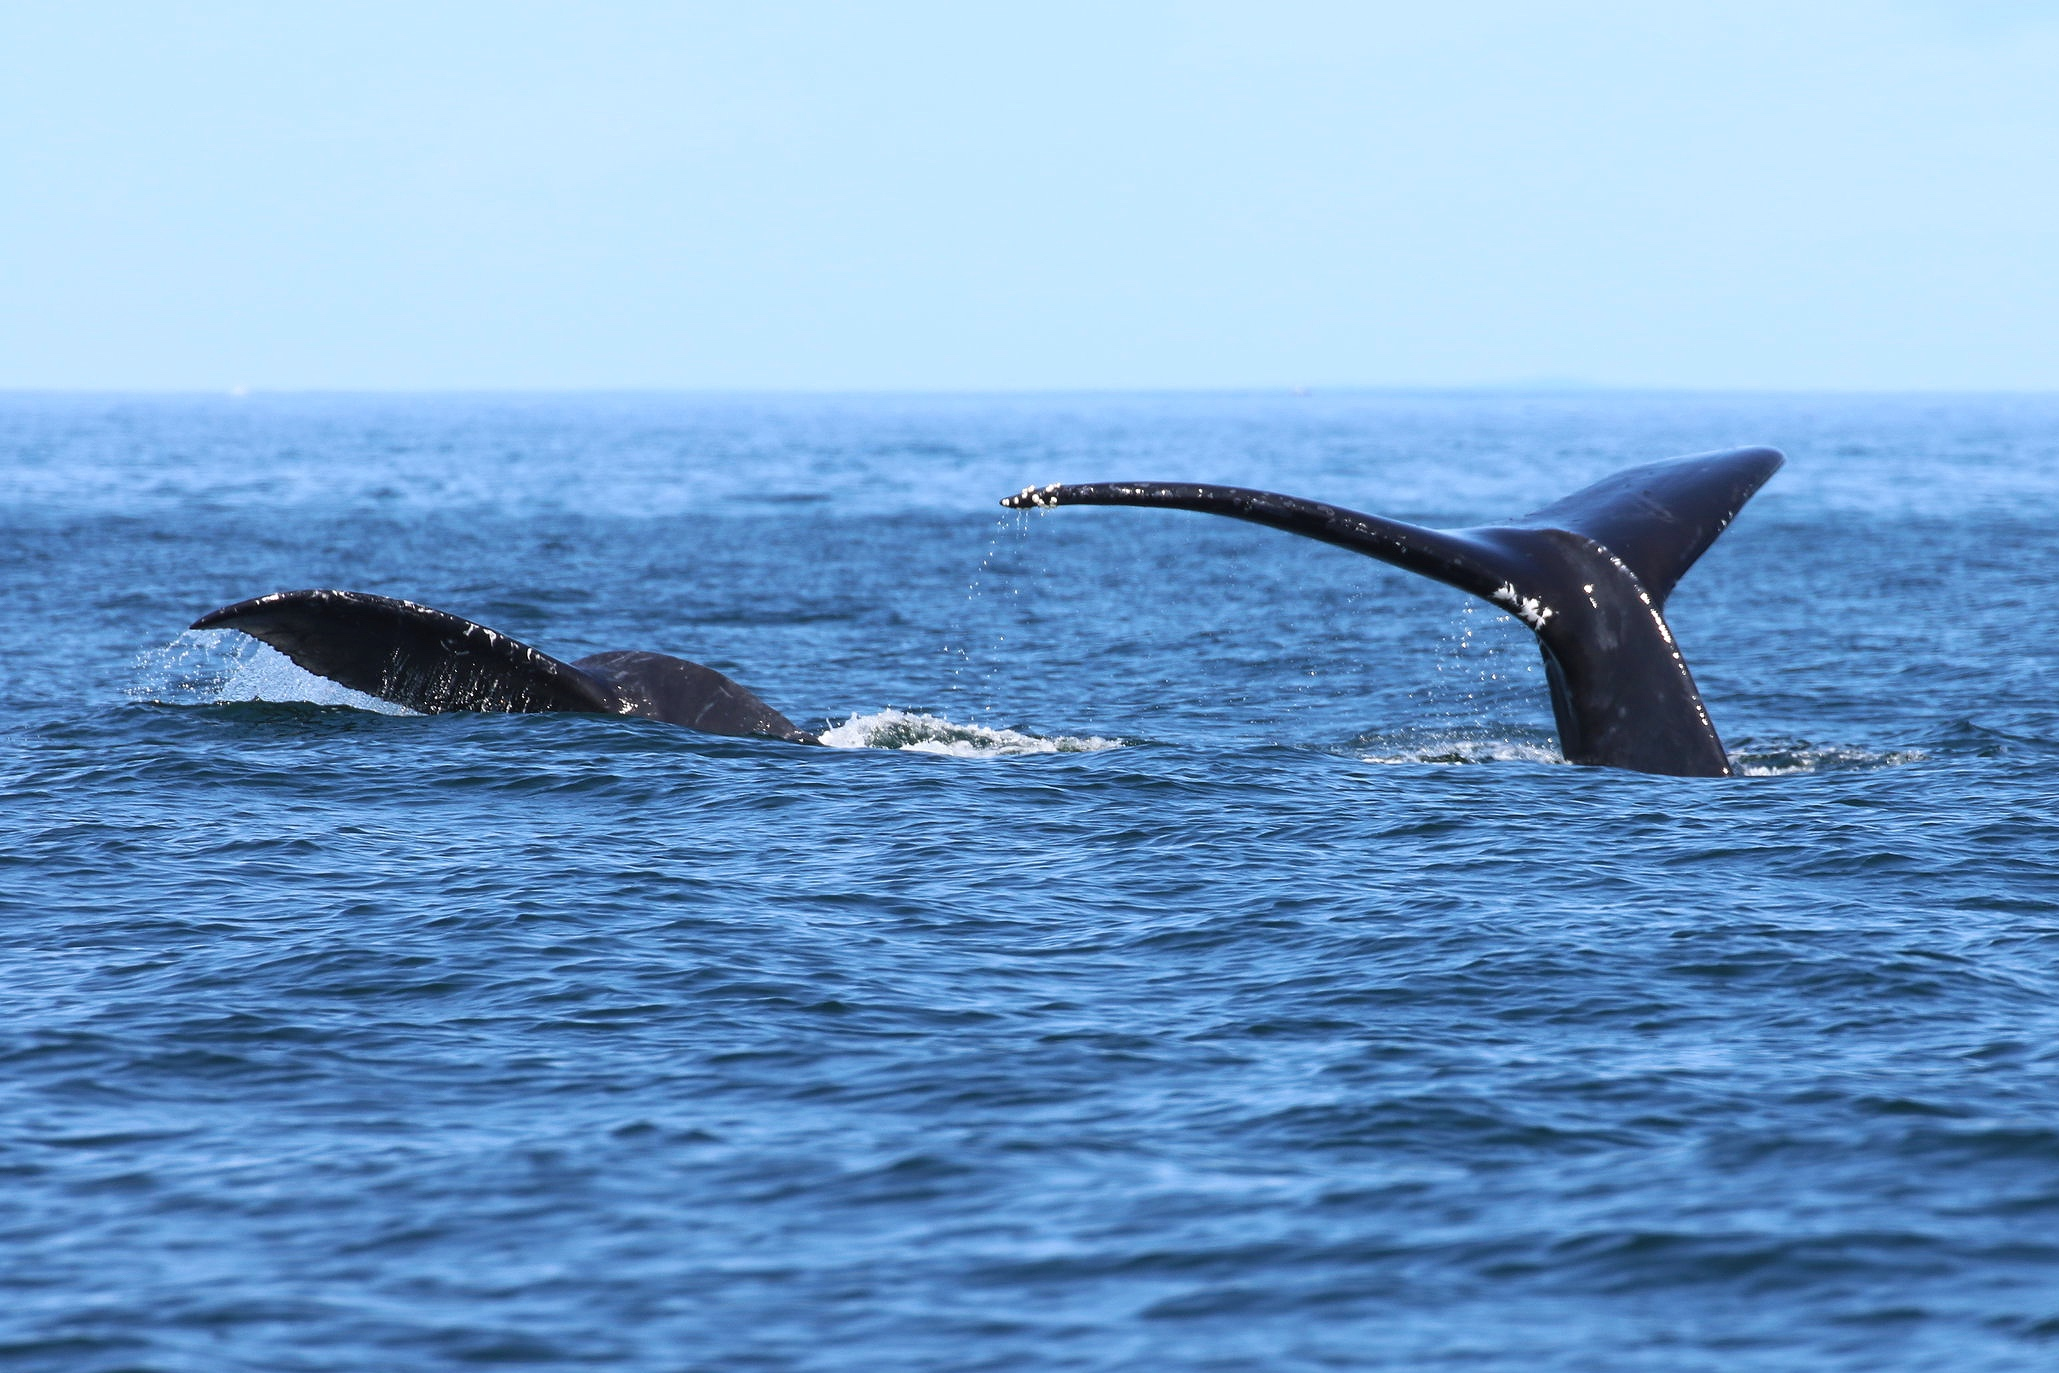 Slate (right) and calf (right) heading for a deep dive! photo by Rebeka Pirker (10.30)